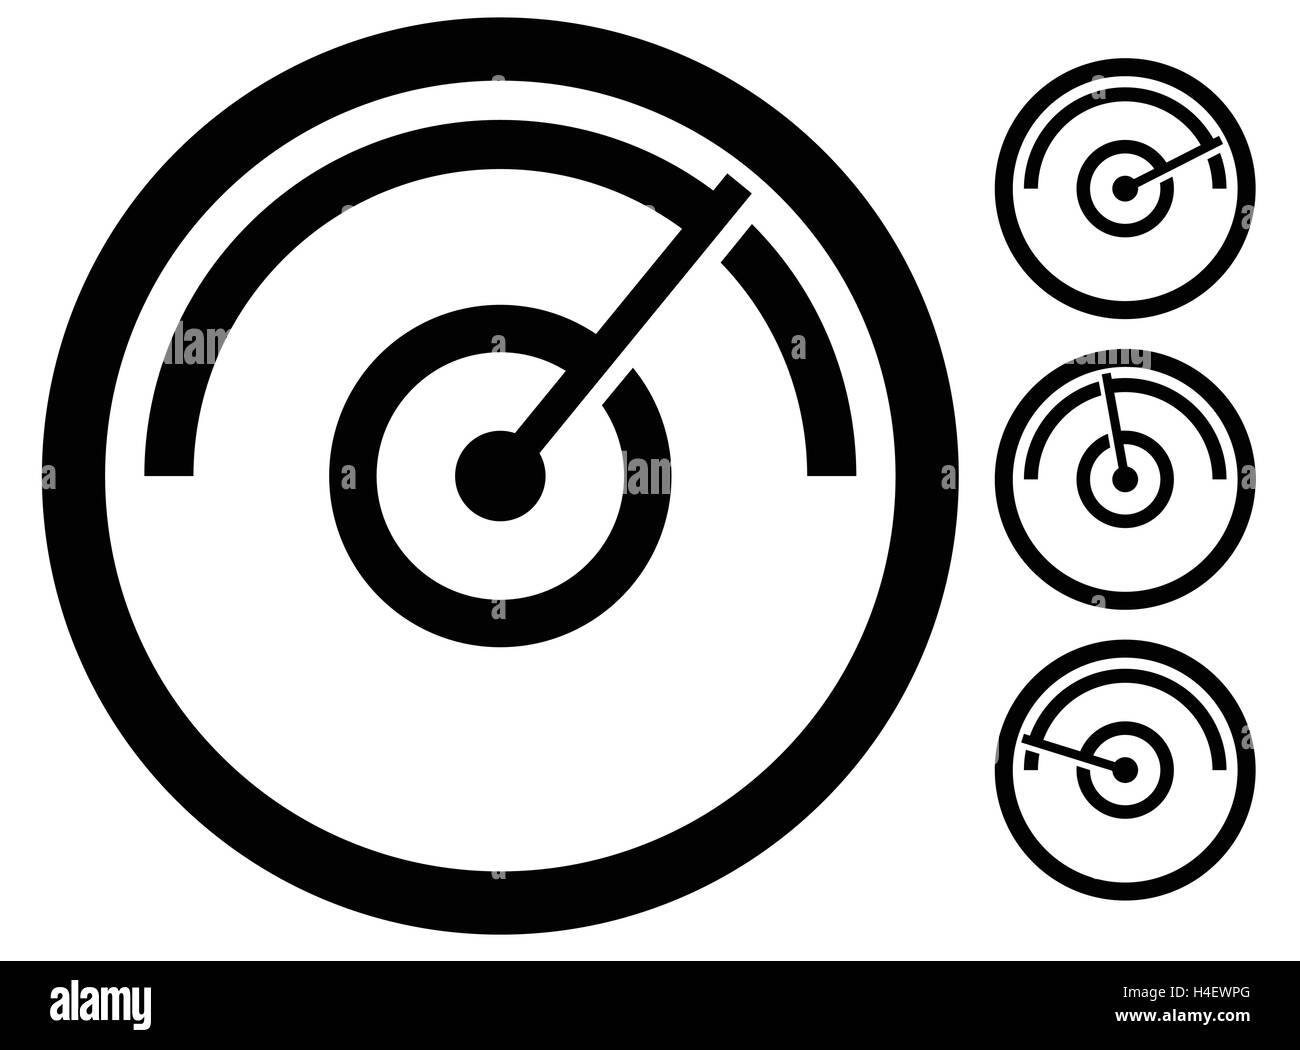 Metre squared symbol gallery symbol and sign ideas delighted symbol for meter contemporary electrical circuit gauge meter symbol icon at 4 stages pressure gauge biocorpaavc